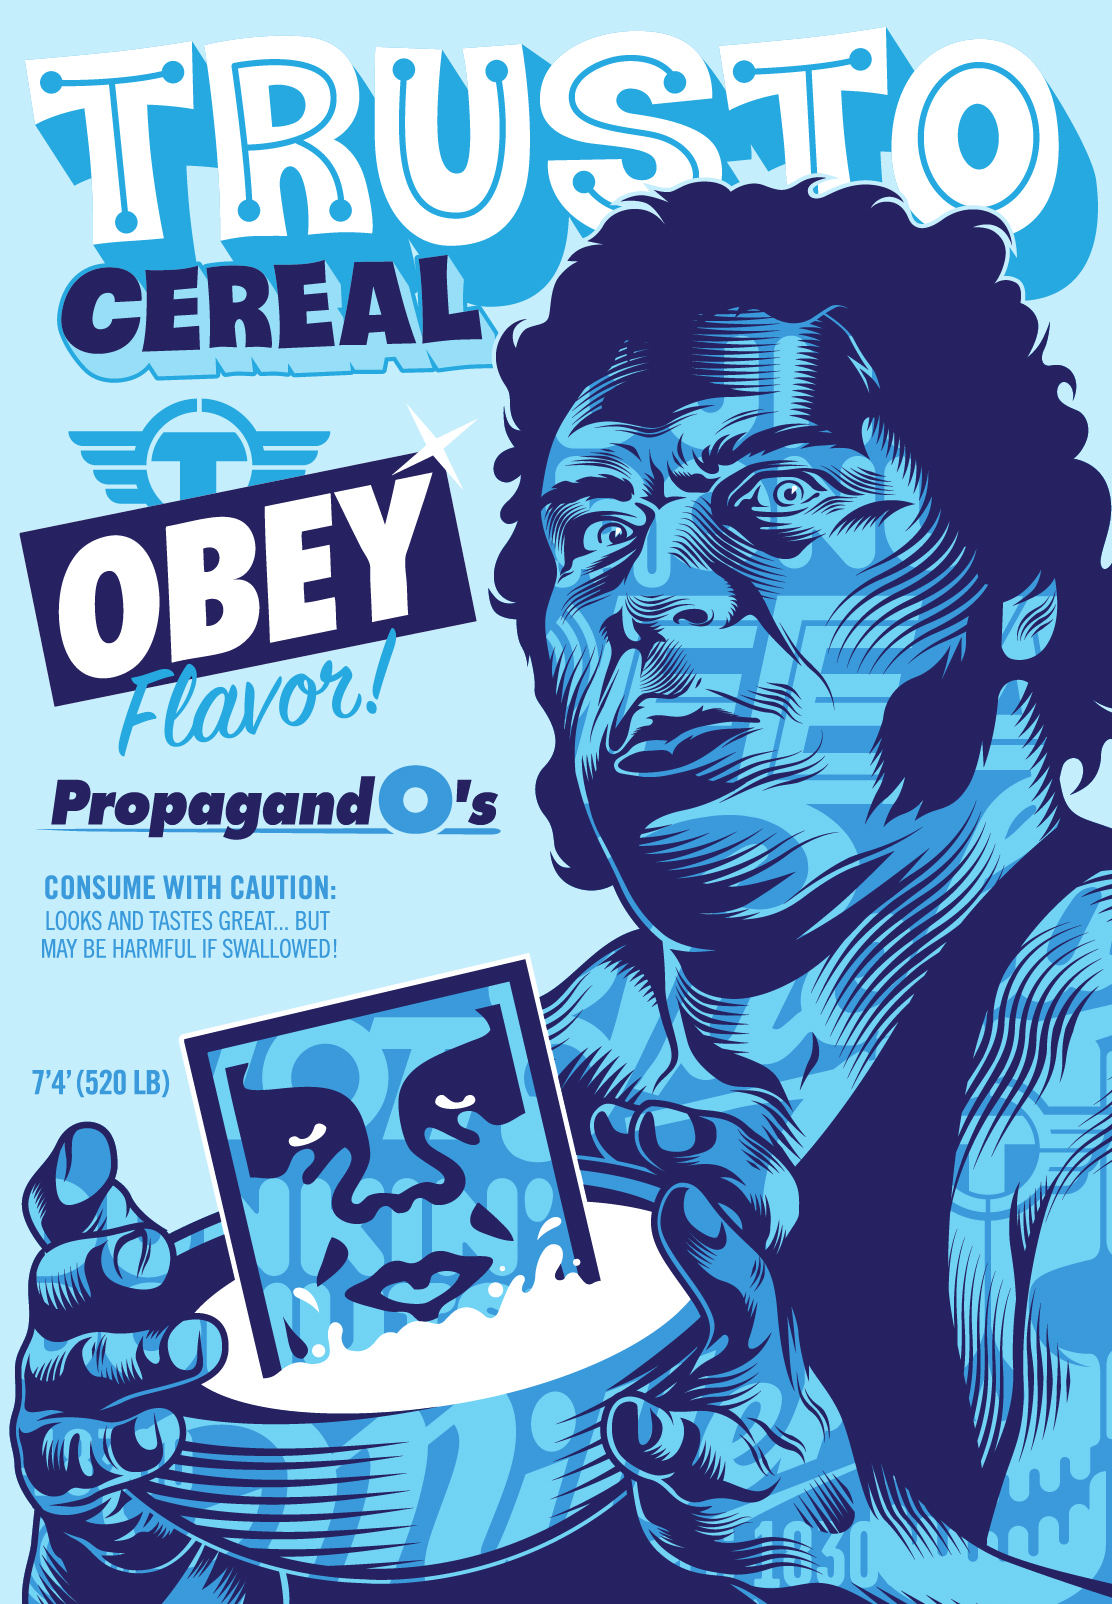 TRUSTO / OBEY CEREAL | OBEY GIANT